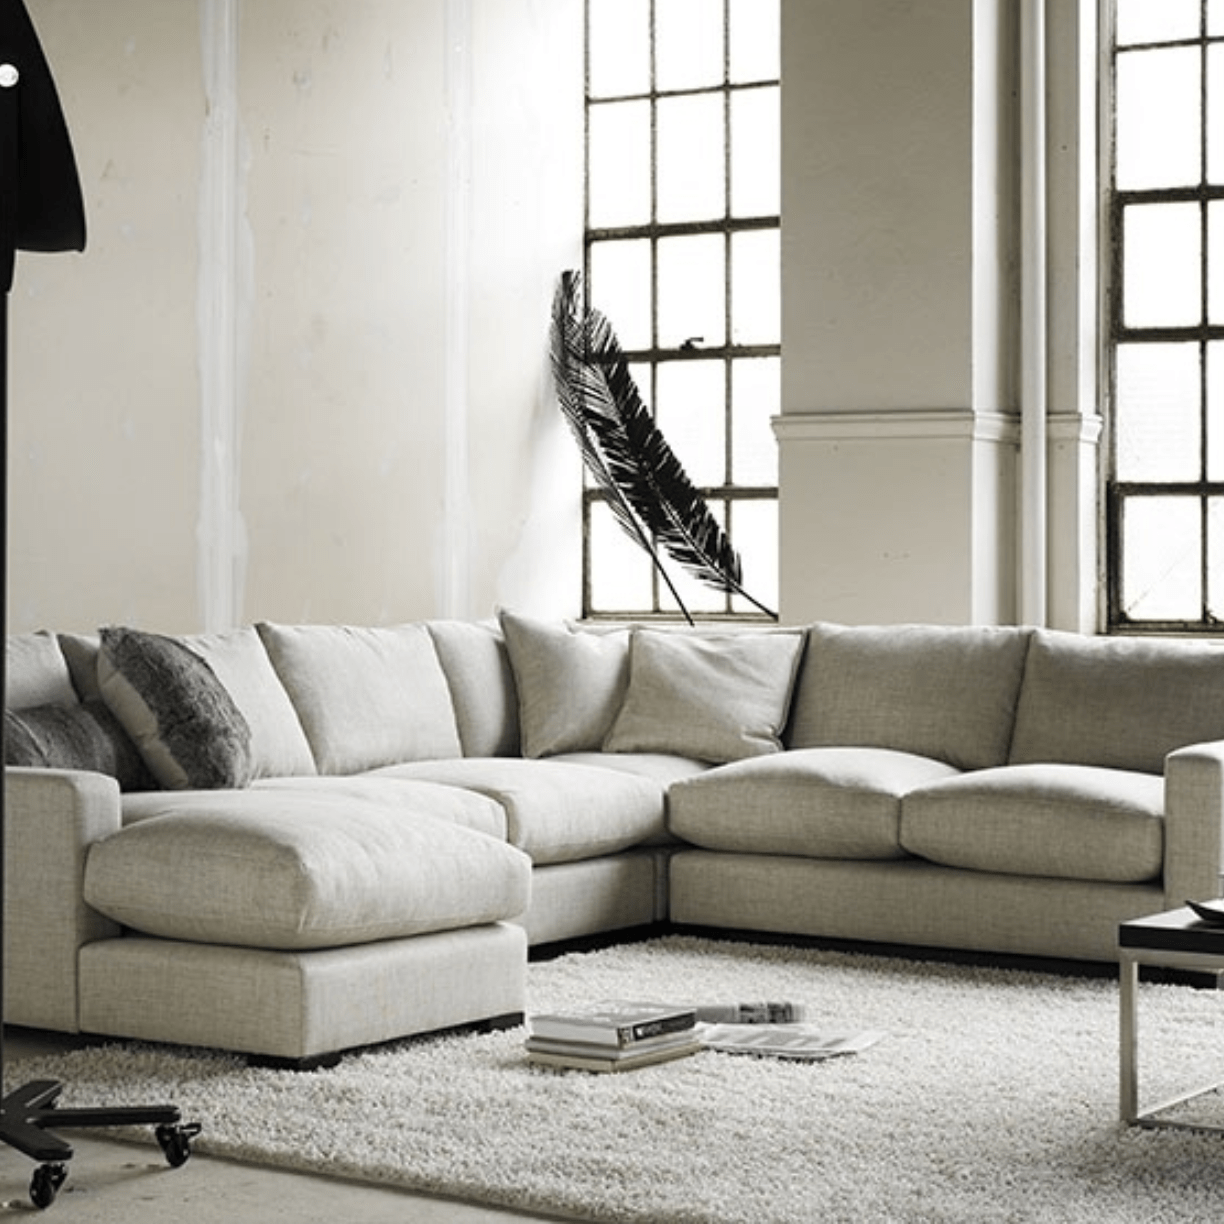 Sofa Cleaning Montreal Dublin Modular Sectional Mikaza Meubles Modernes